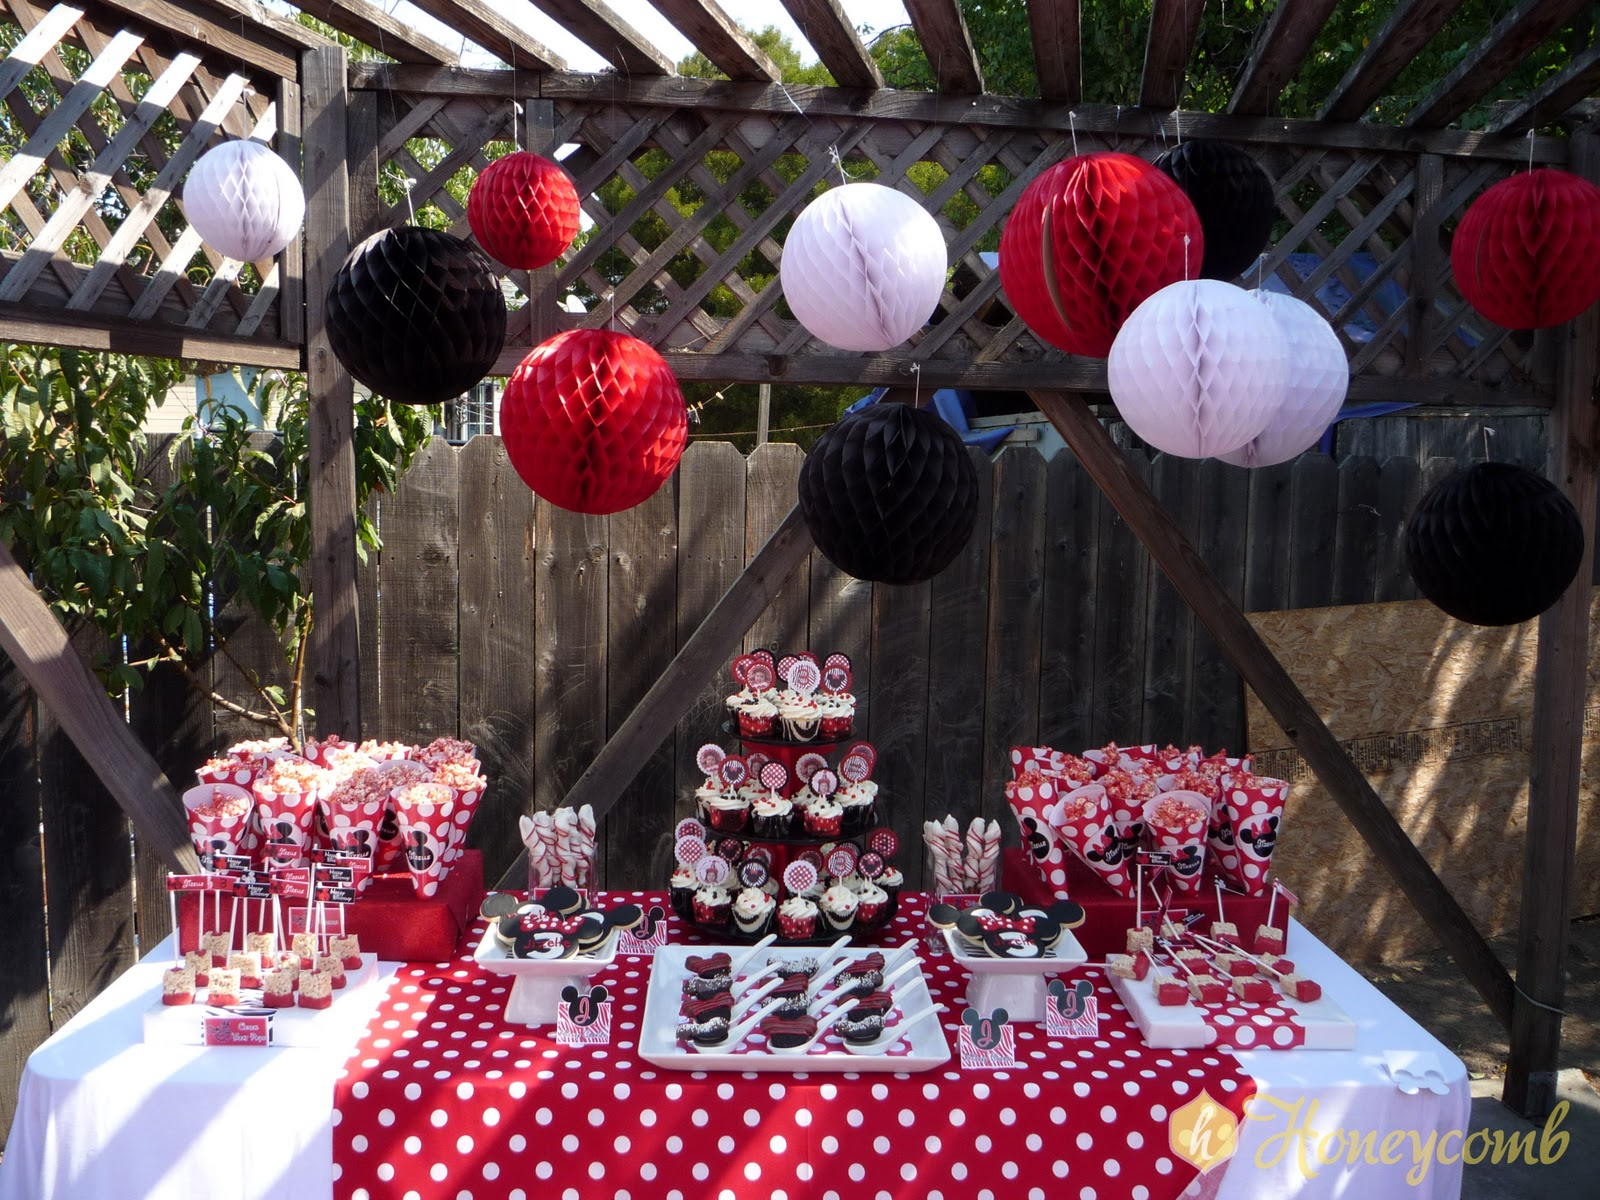 Honeycomb events design first year in review for 2nd birthday decoration